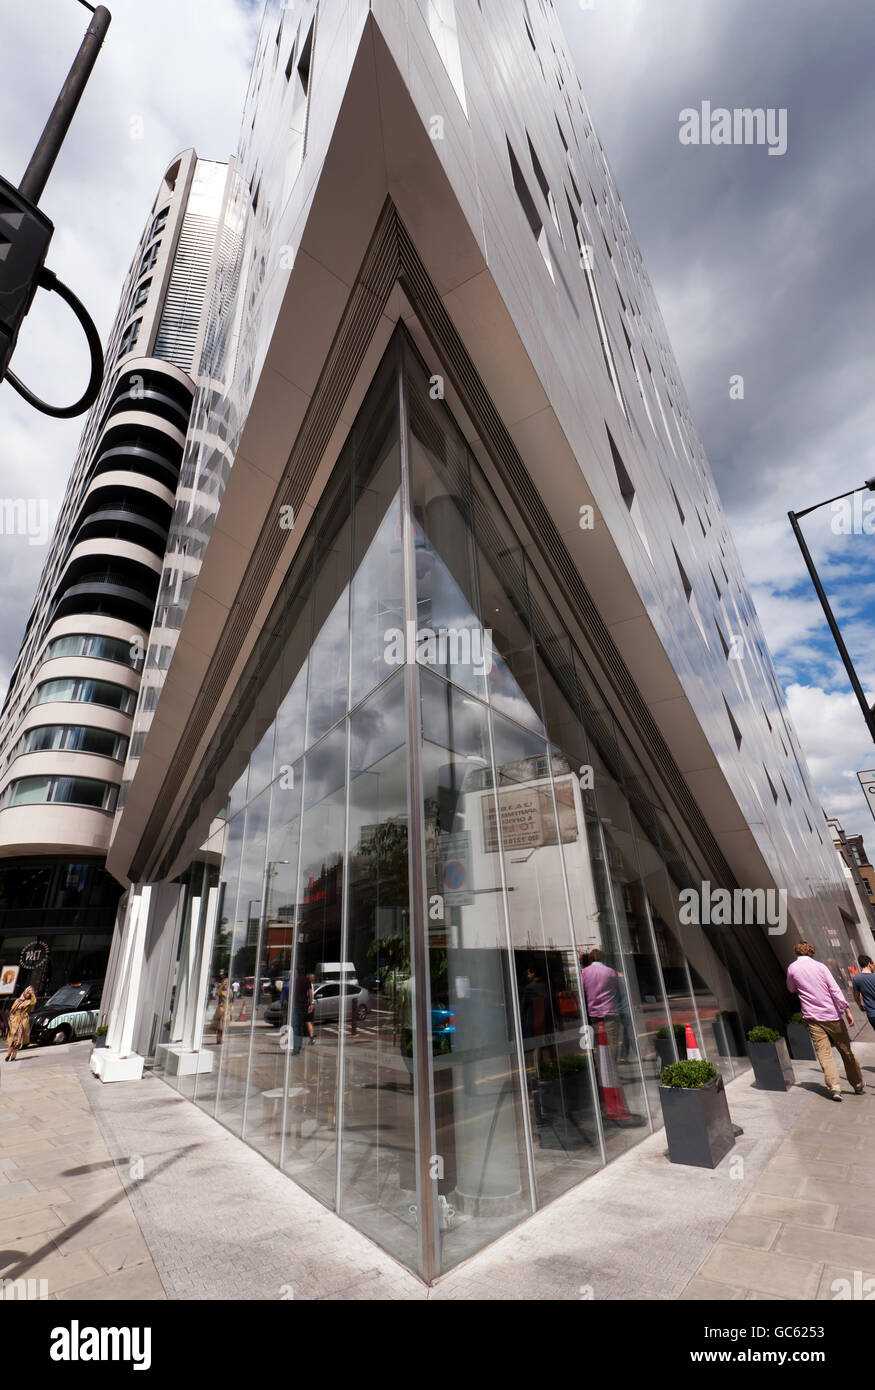 Montcalm Shoreditch: Architectural Details On The Front Of The Luxury Hotel, M